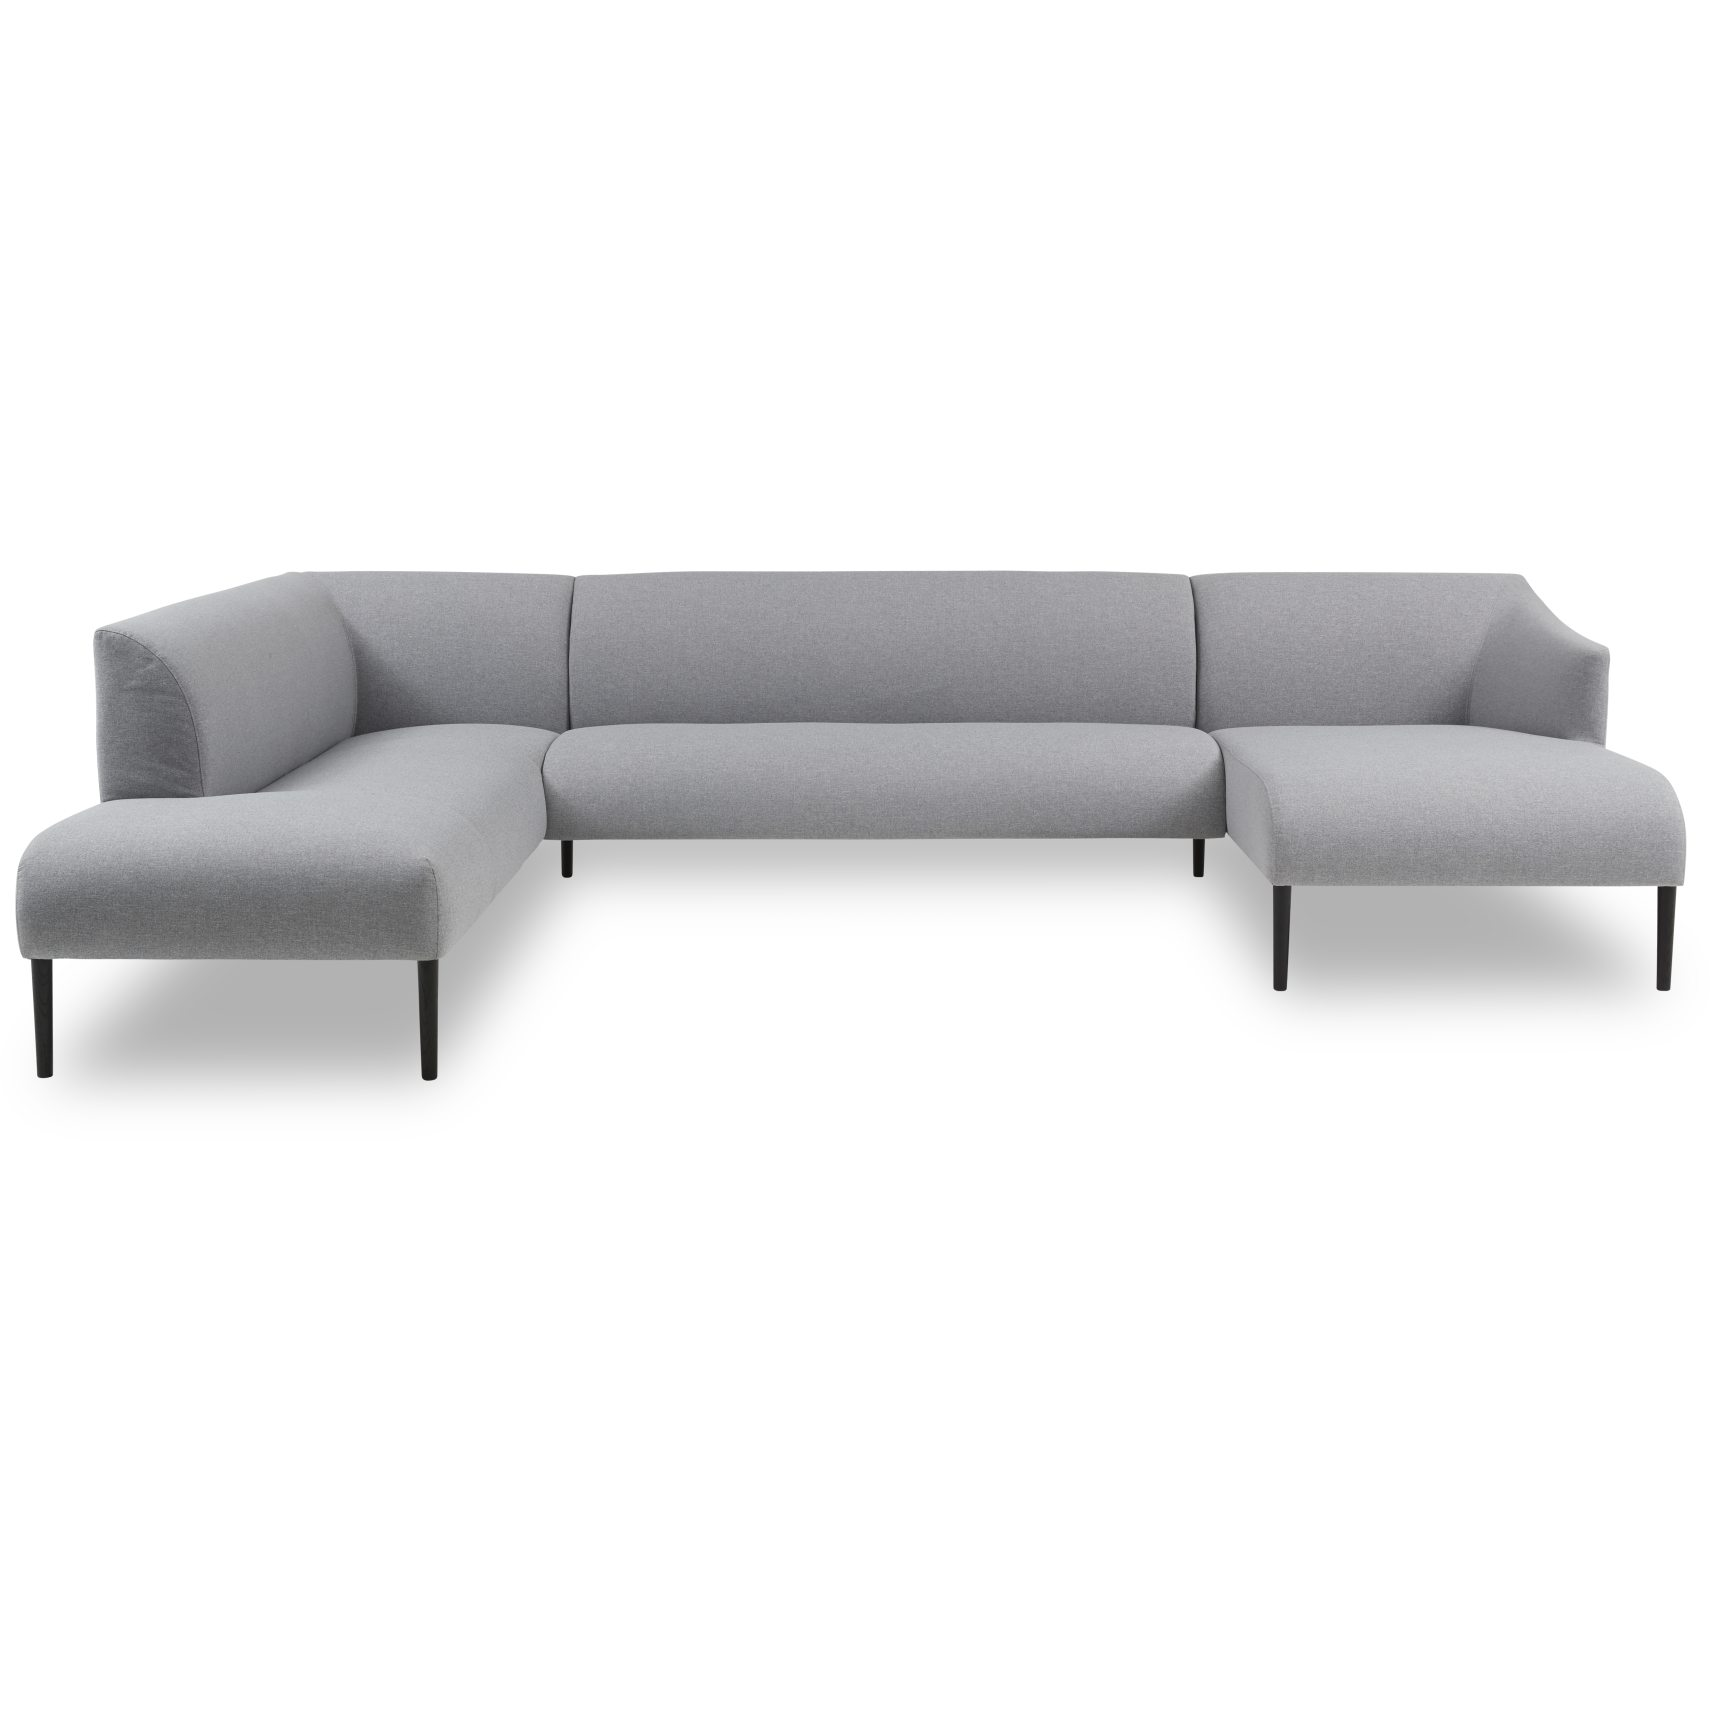 Sessa Hjørnesofa med chaiselong - Spy 331 Light grey stof og ben i sortbejdset eg